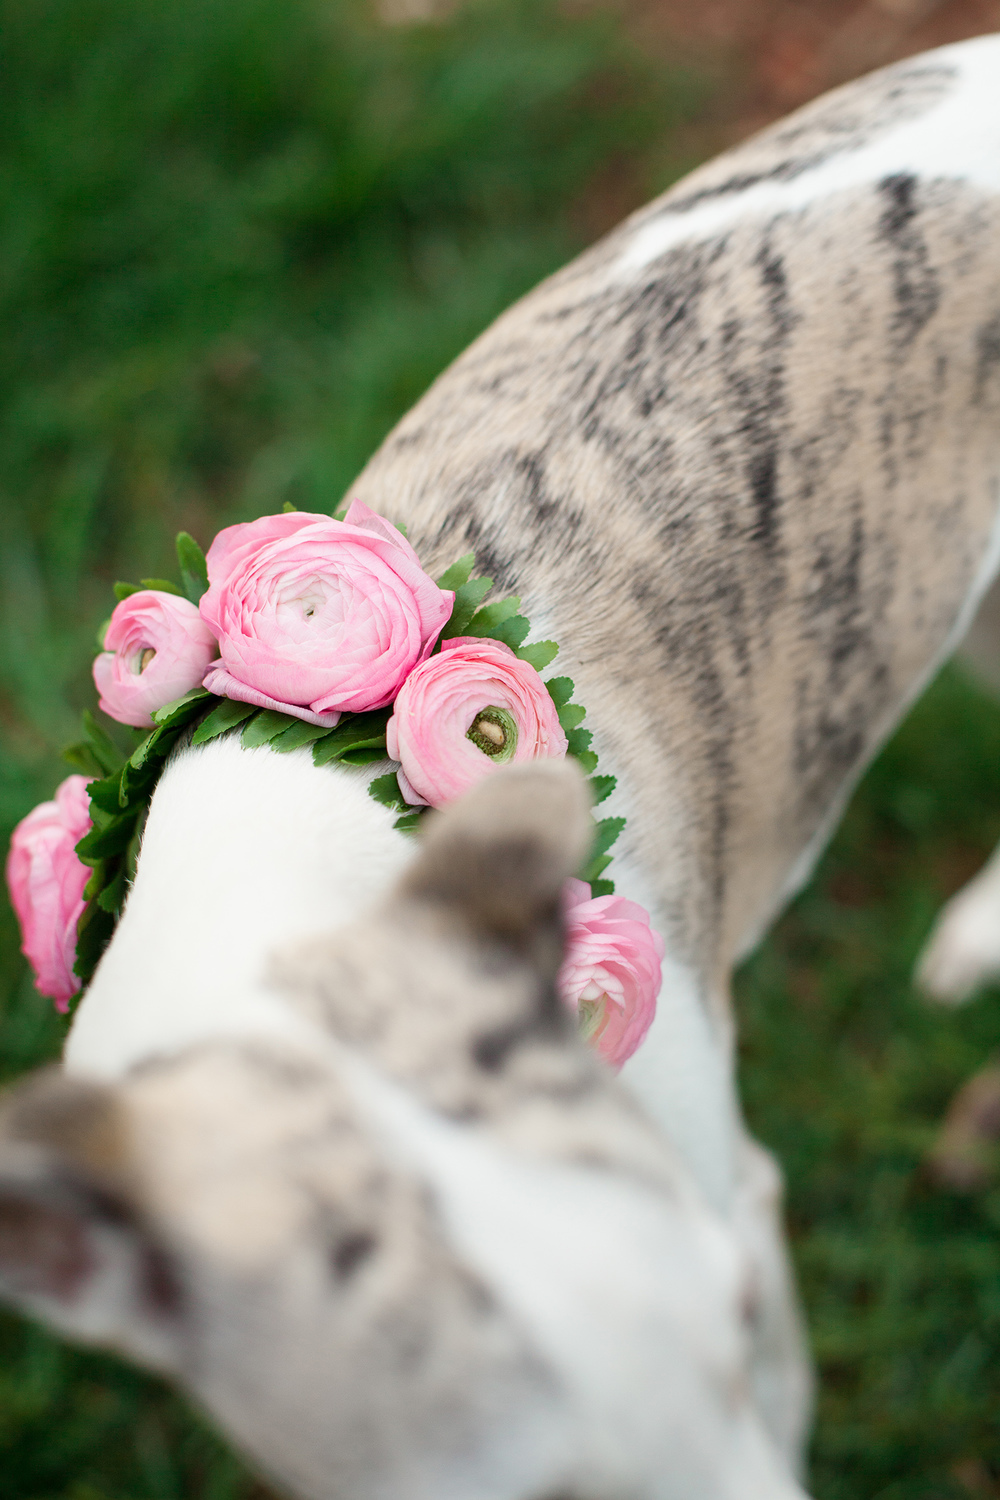 Pink Floral Collar Inspiration for Puppies at Weddings